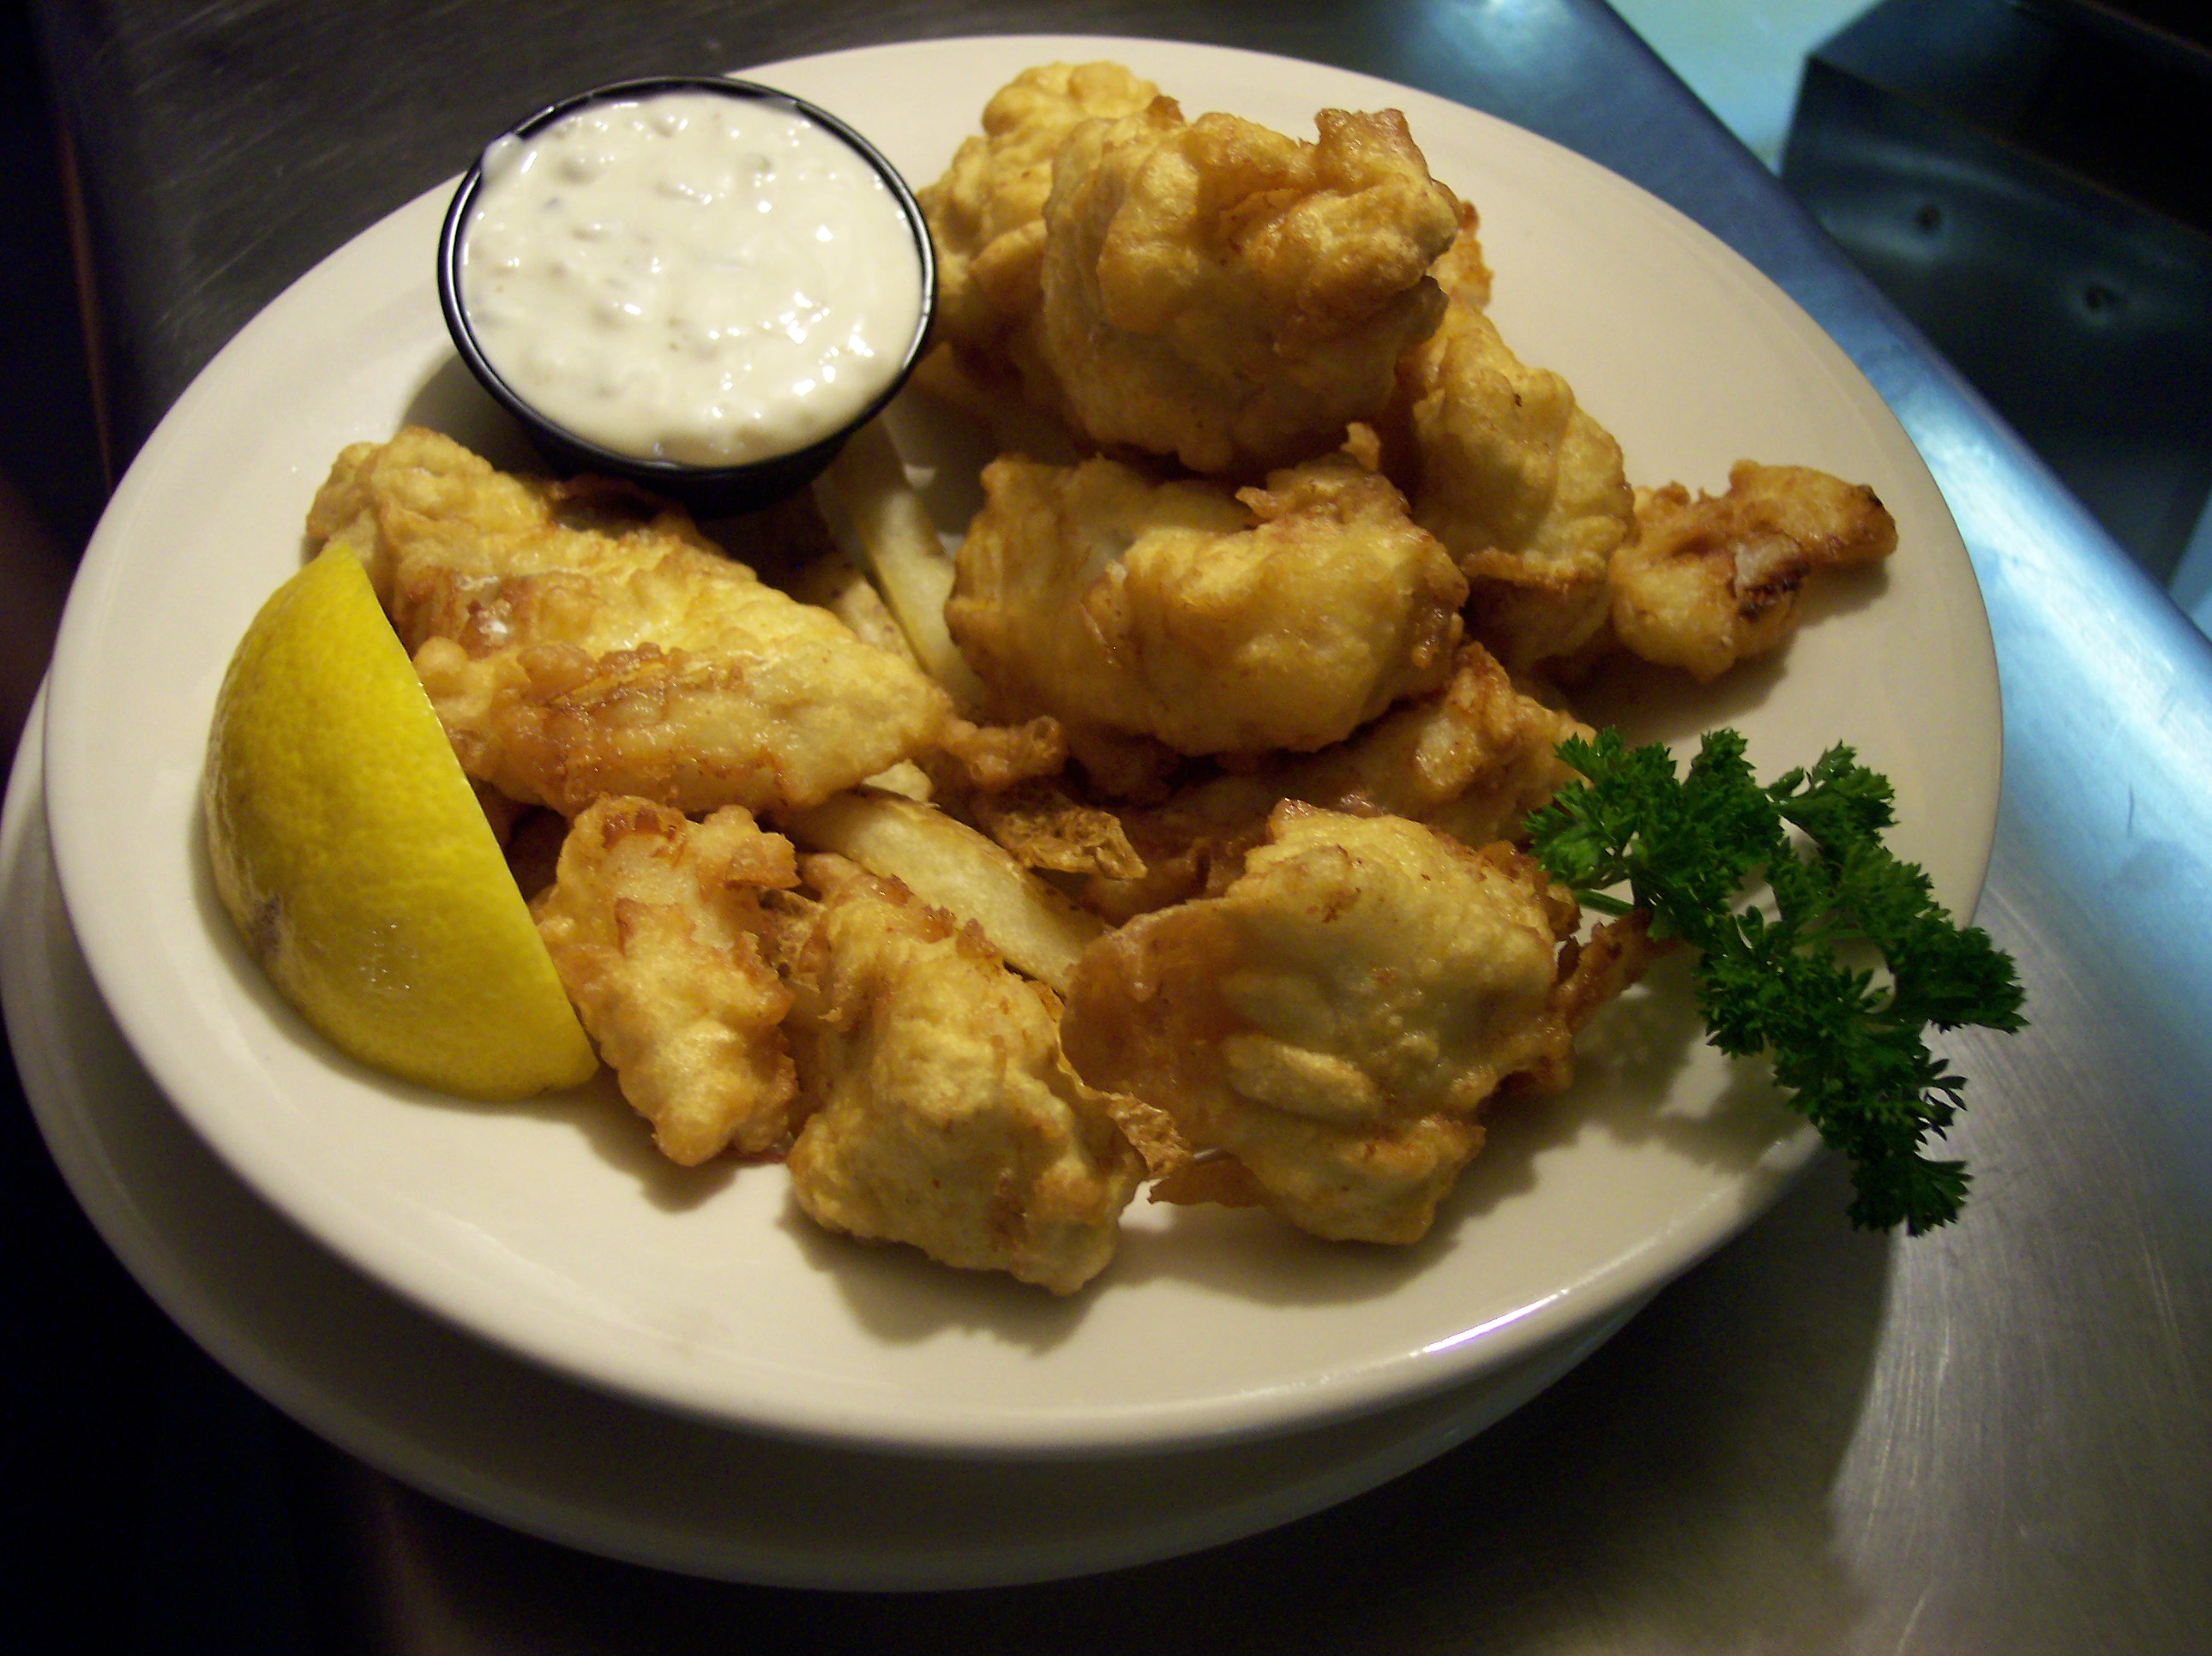 Dining in harpswell maine restaurants and lobster pounds for Best fish restaurants near me